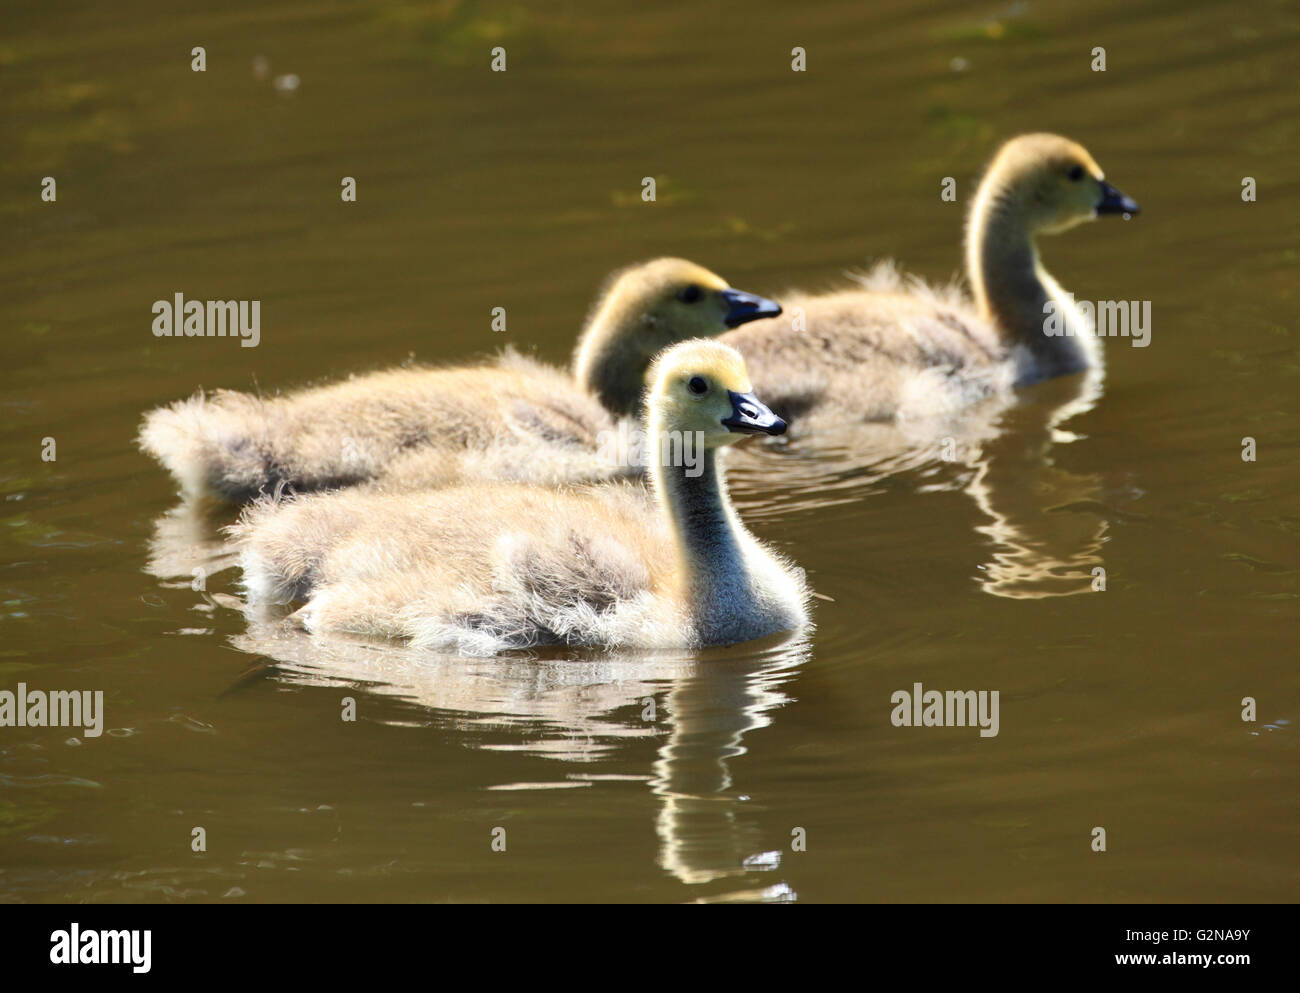 A trio of Cananda Geese (Branta canadensis) goslings, Kidderminster, Worcestershire, England, Europe - Stock Image